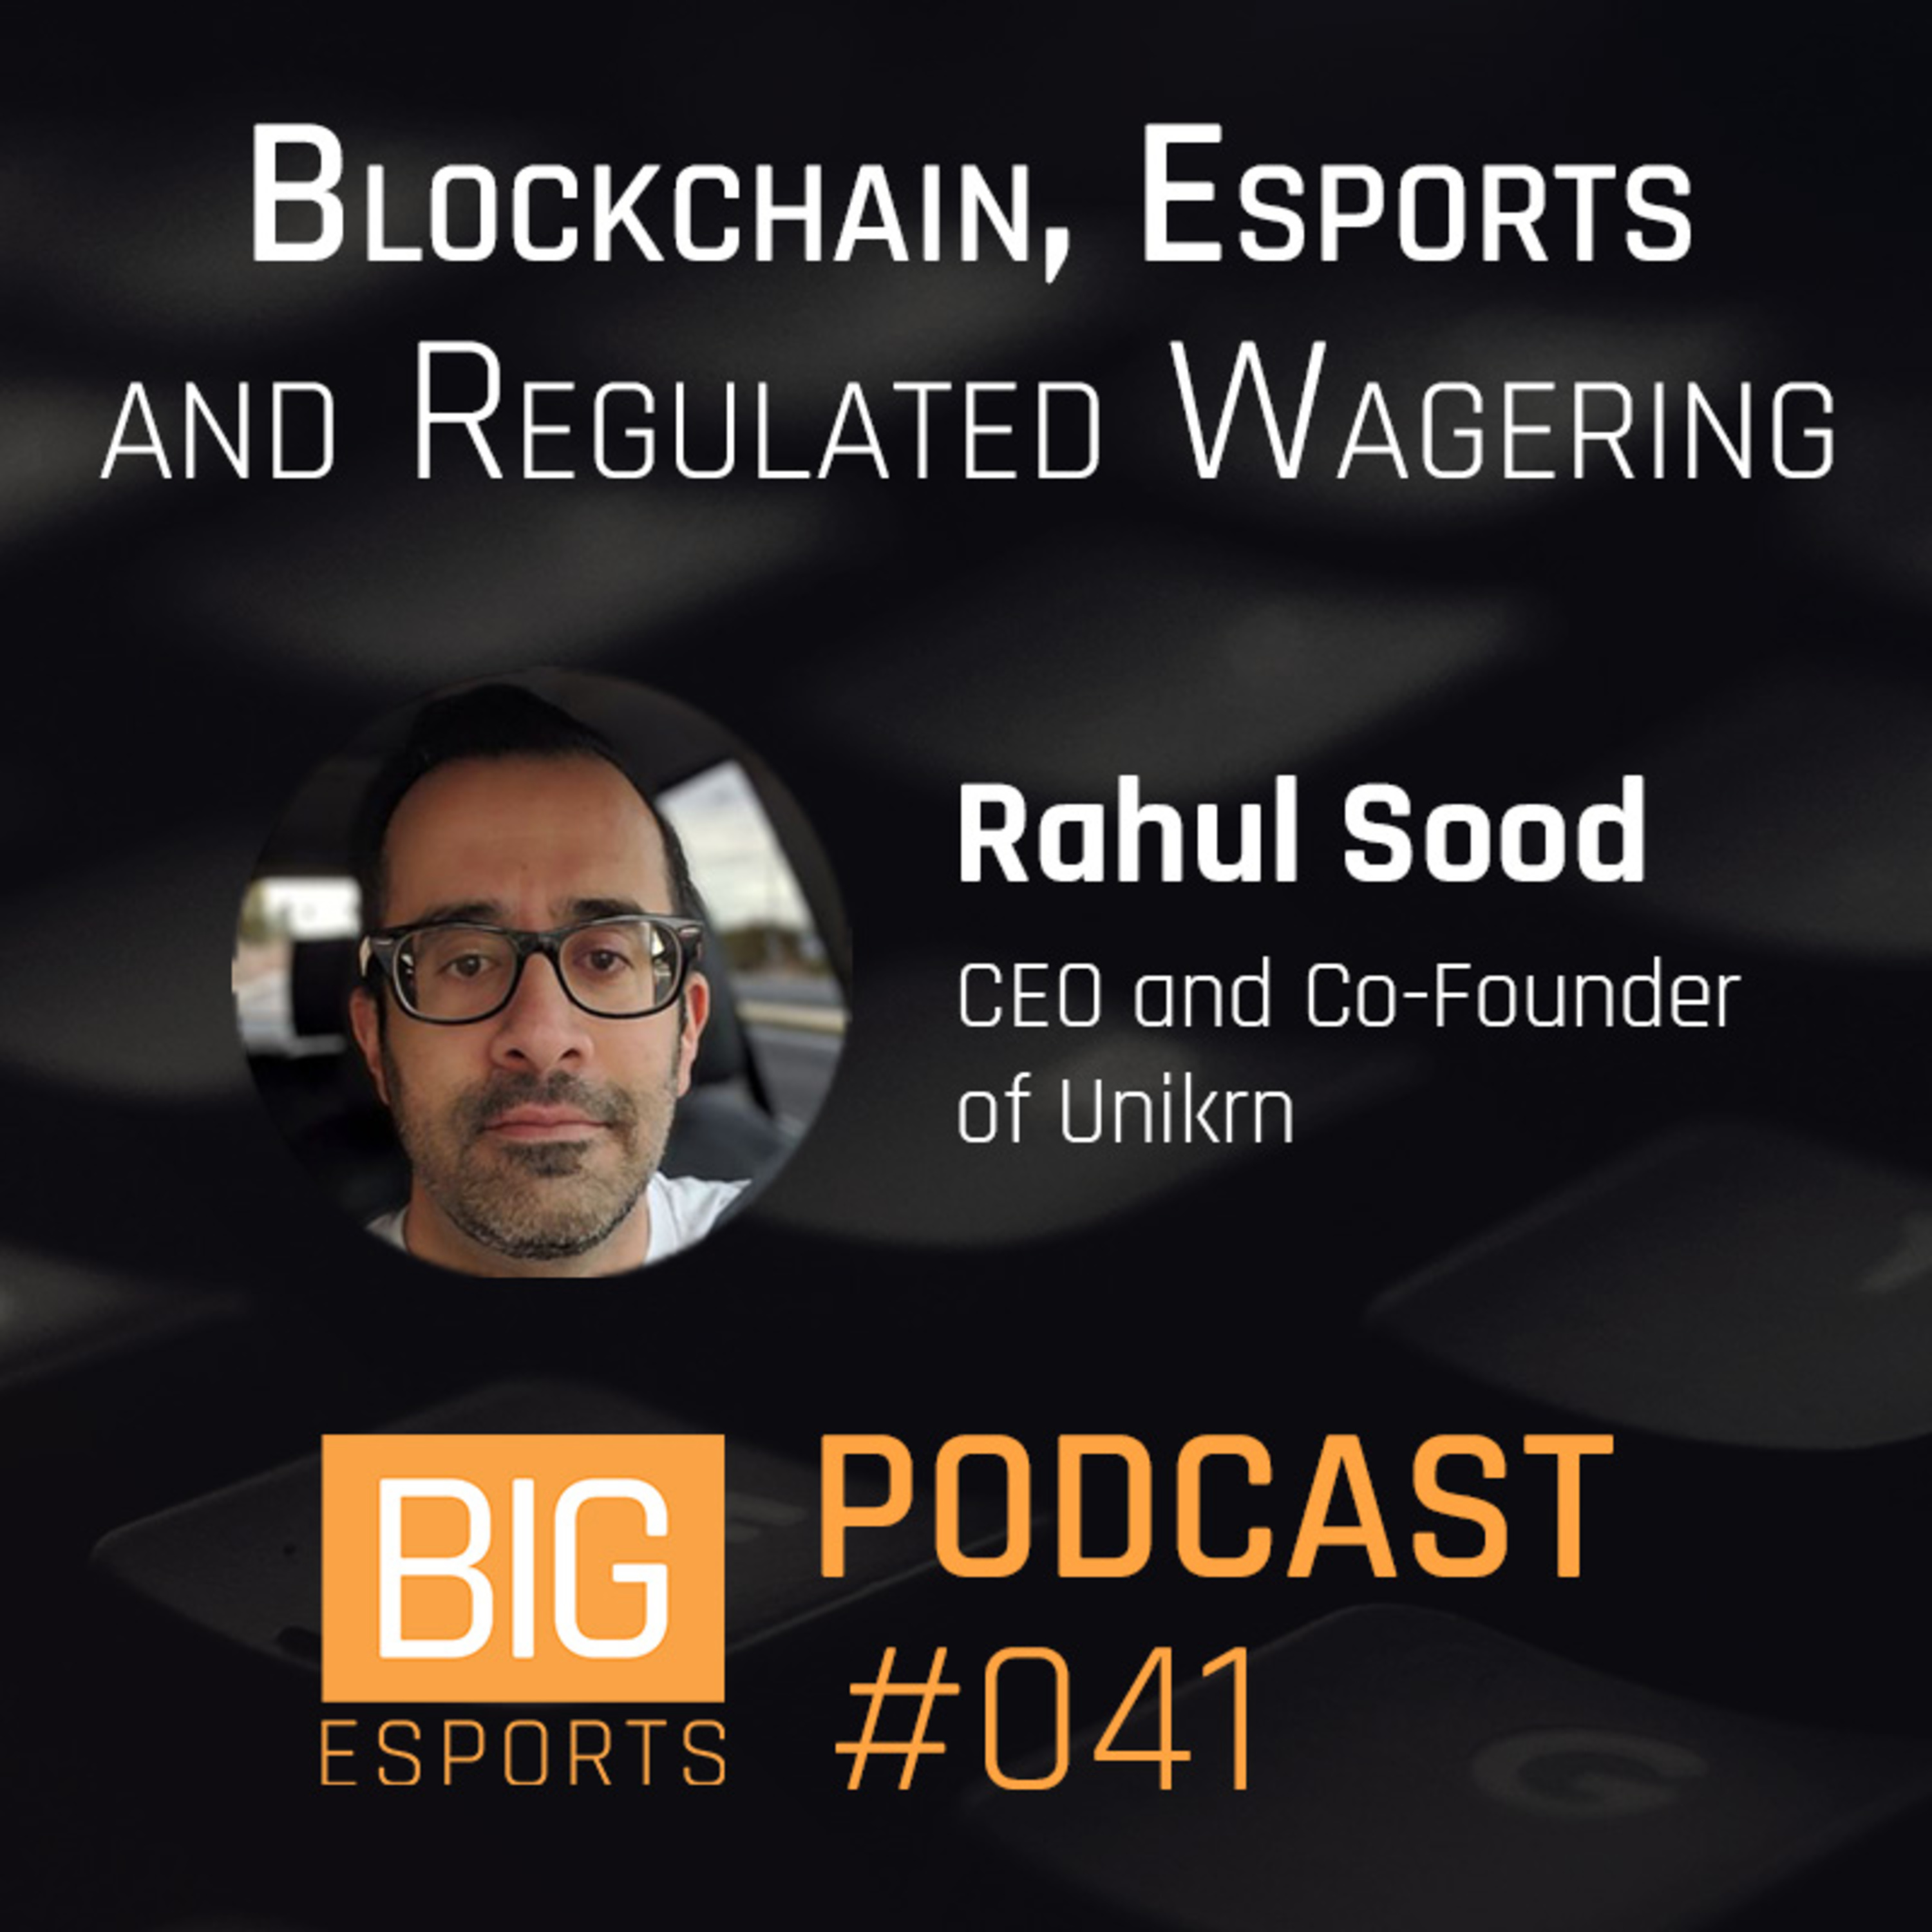 #041 - Blockchain, Esports and Regulated Wagering